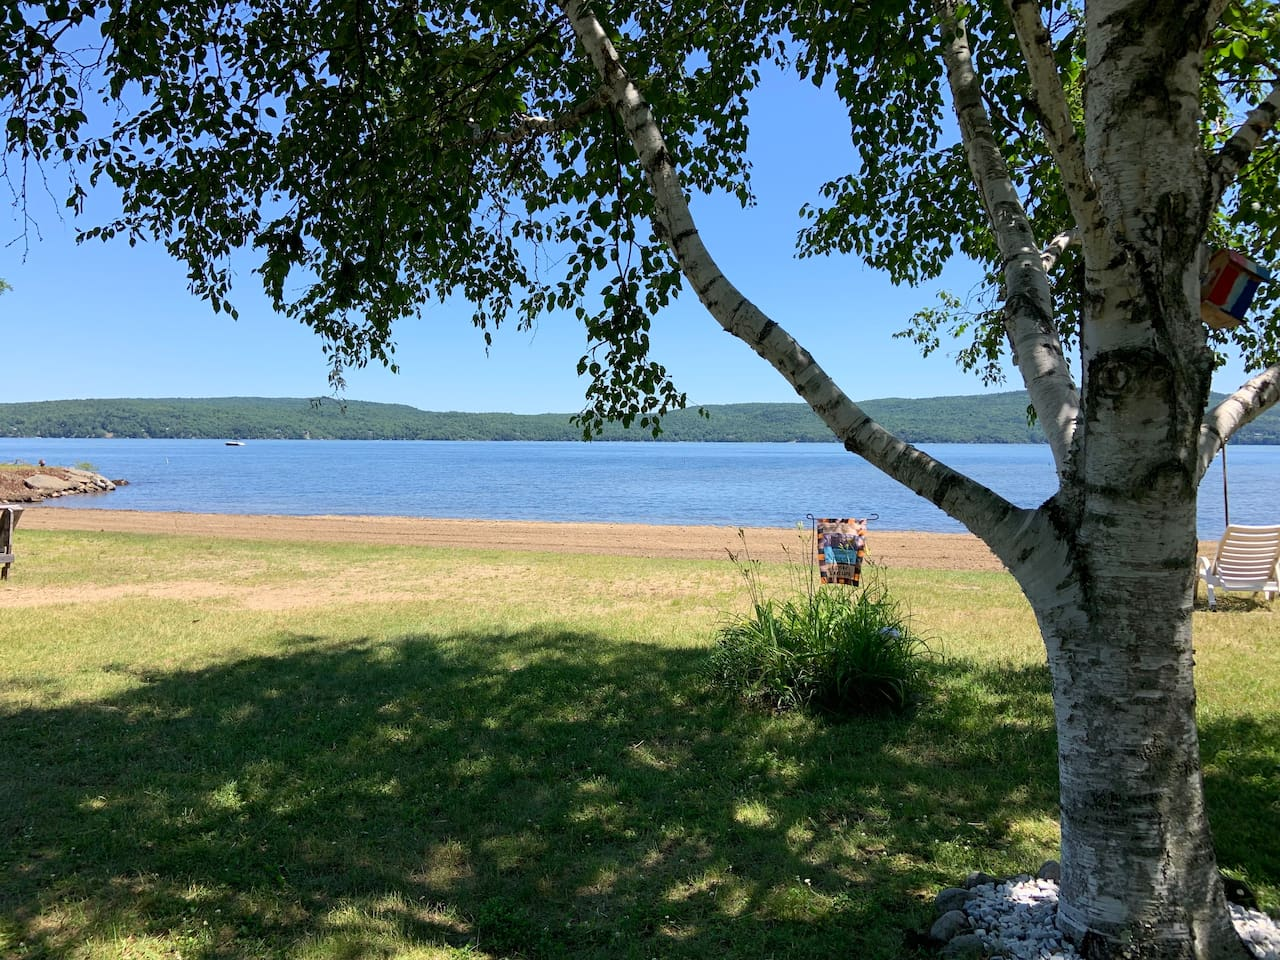 Welcome to beautiful Hague on Lake George. Enjoy the crystal clear waters of the Lake or hike up one of the many mountains in the area. Or just relax on our spacious beach out front.